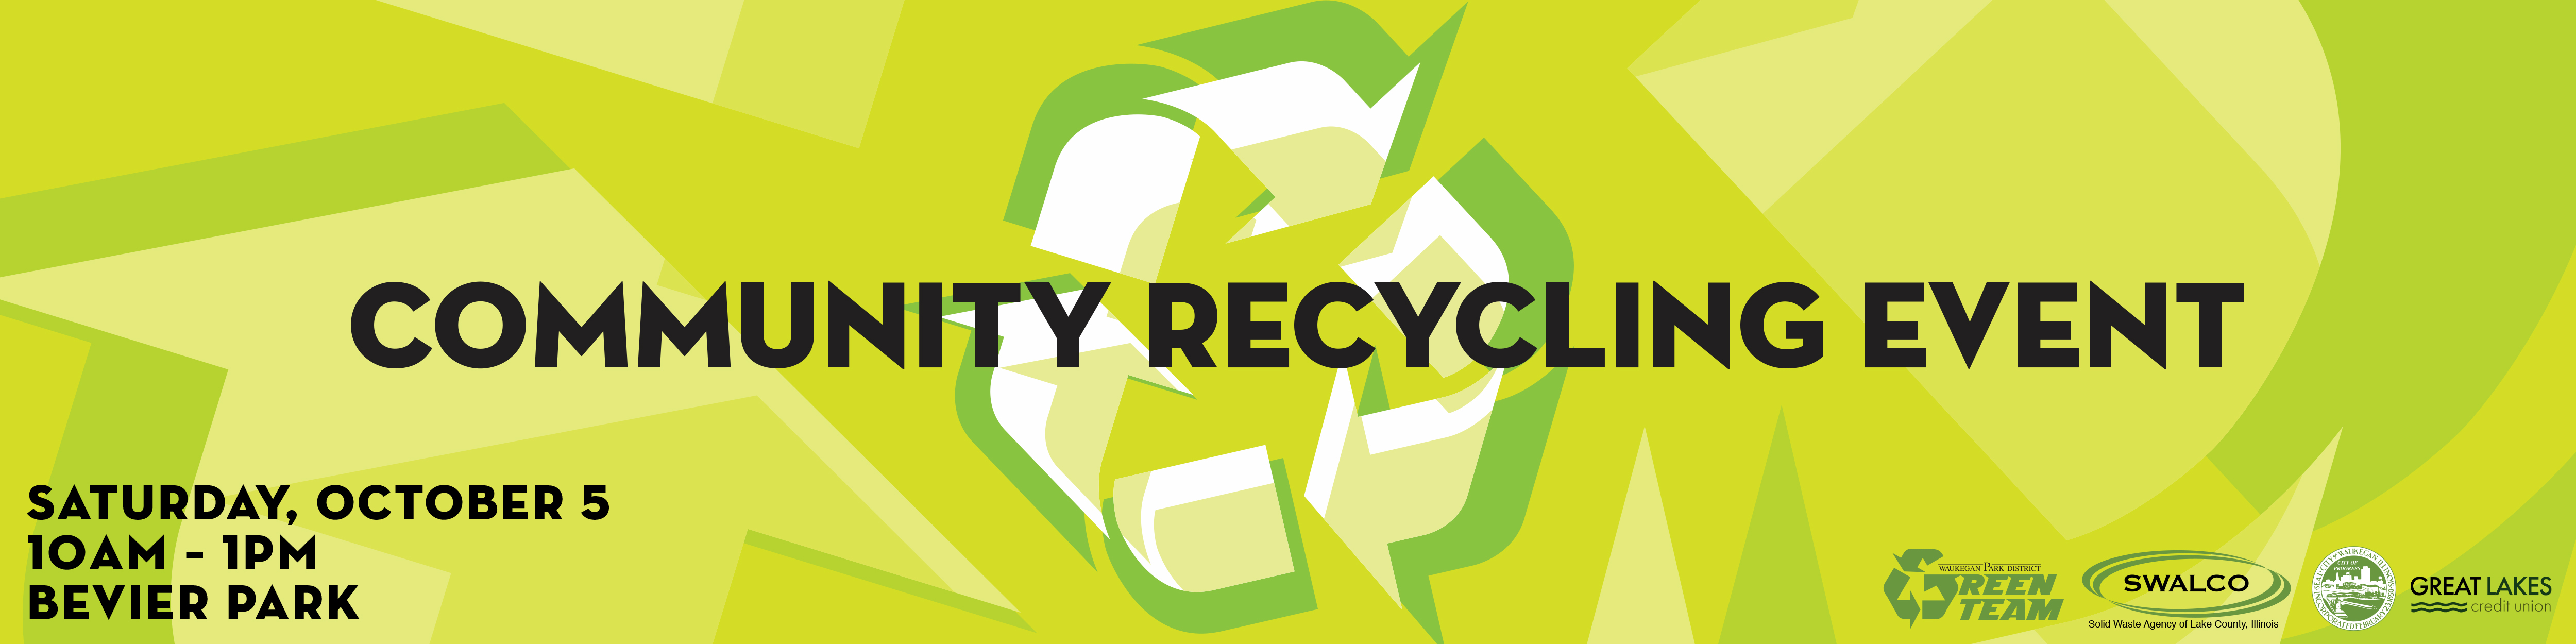 2019 Community Recycling Event